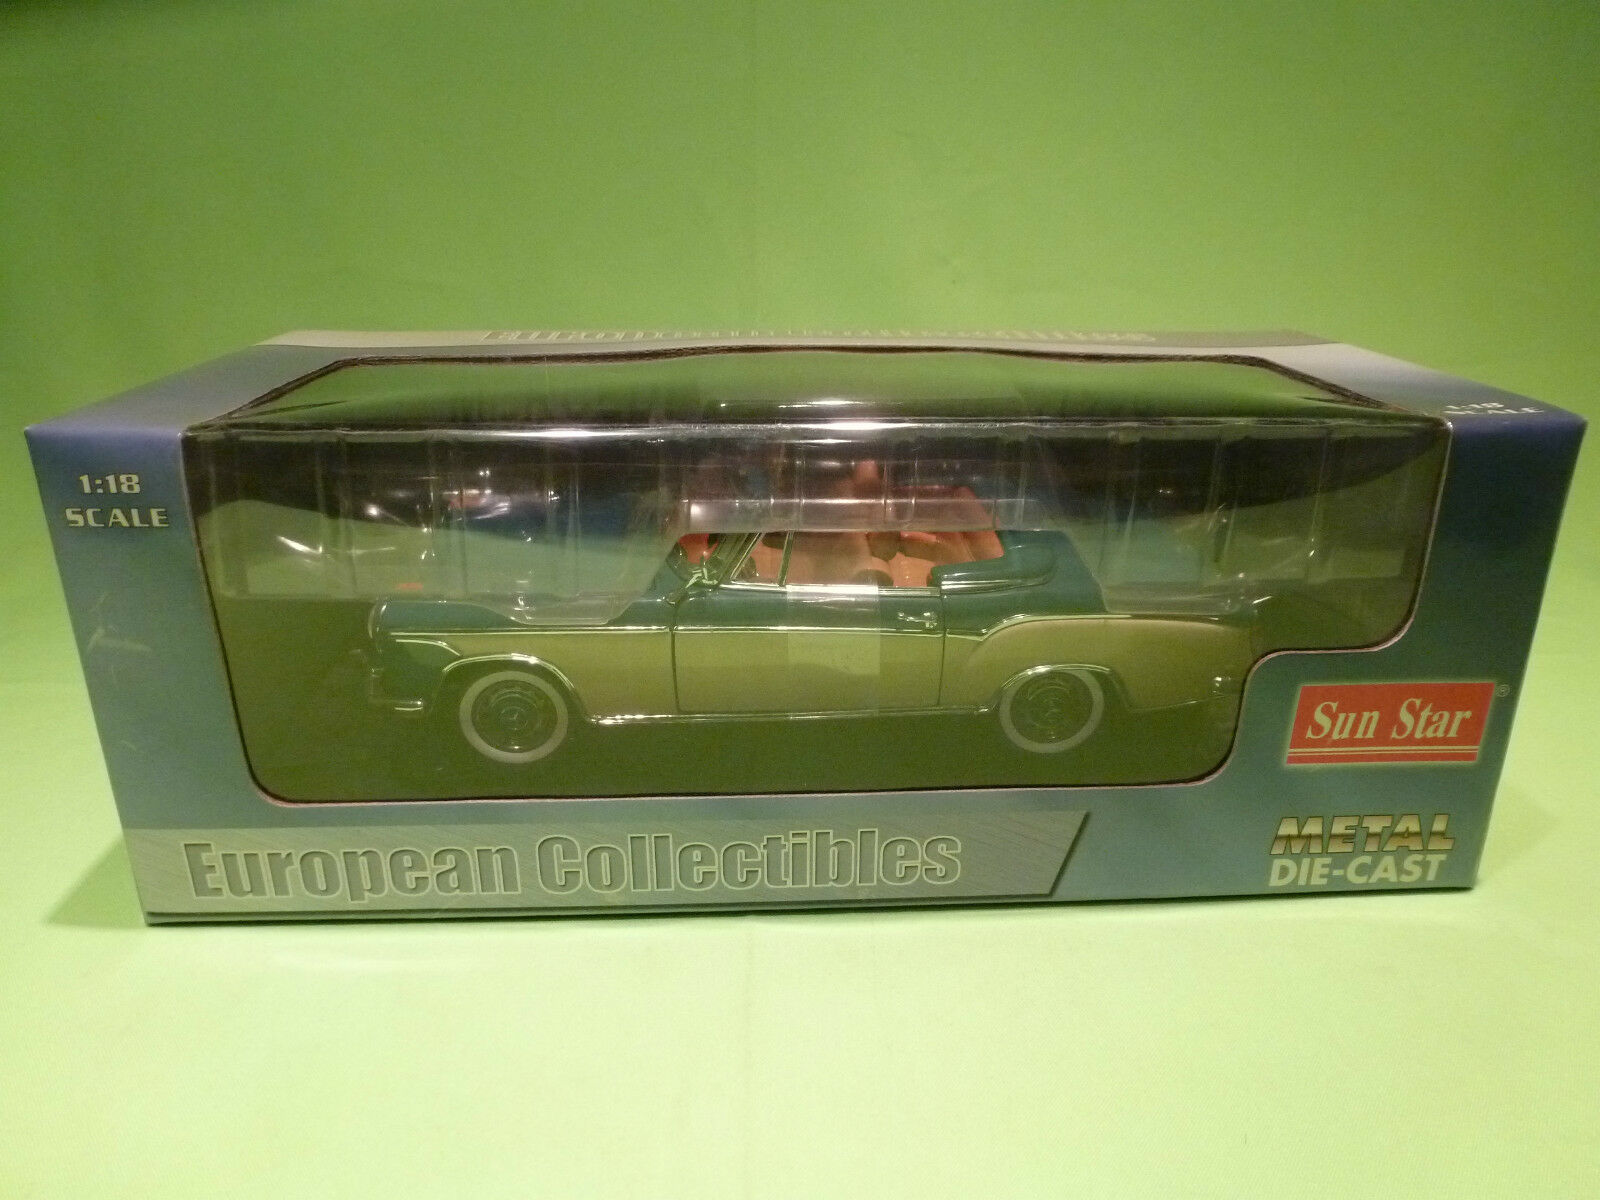 SUN STAR 1:18 MERCEDES BENZ 220 SE 1958 - TWO TONE - RARE GOOD CONDITION IN BOX